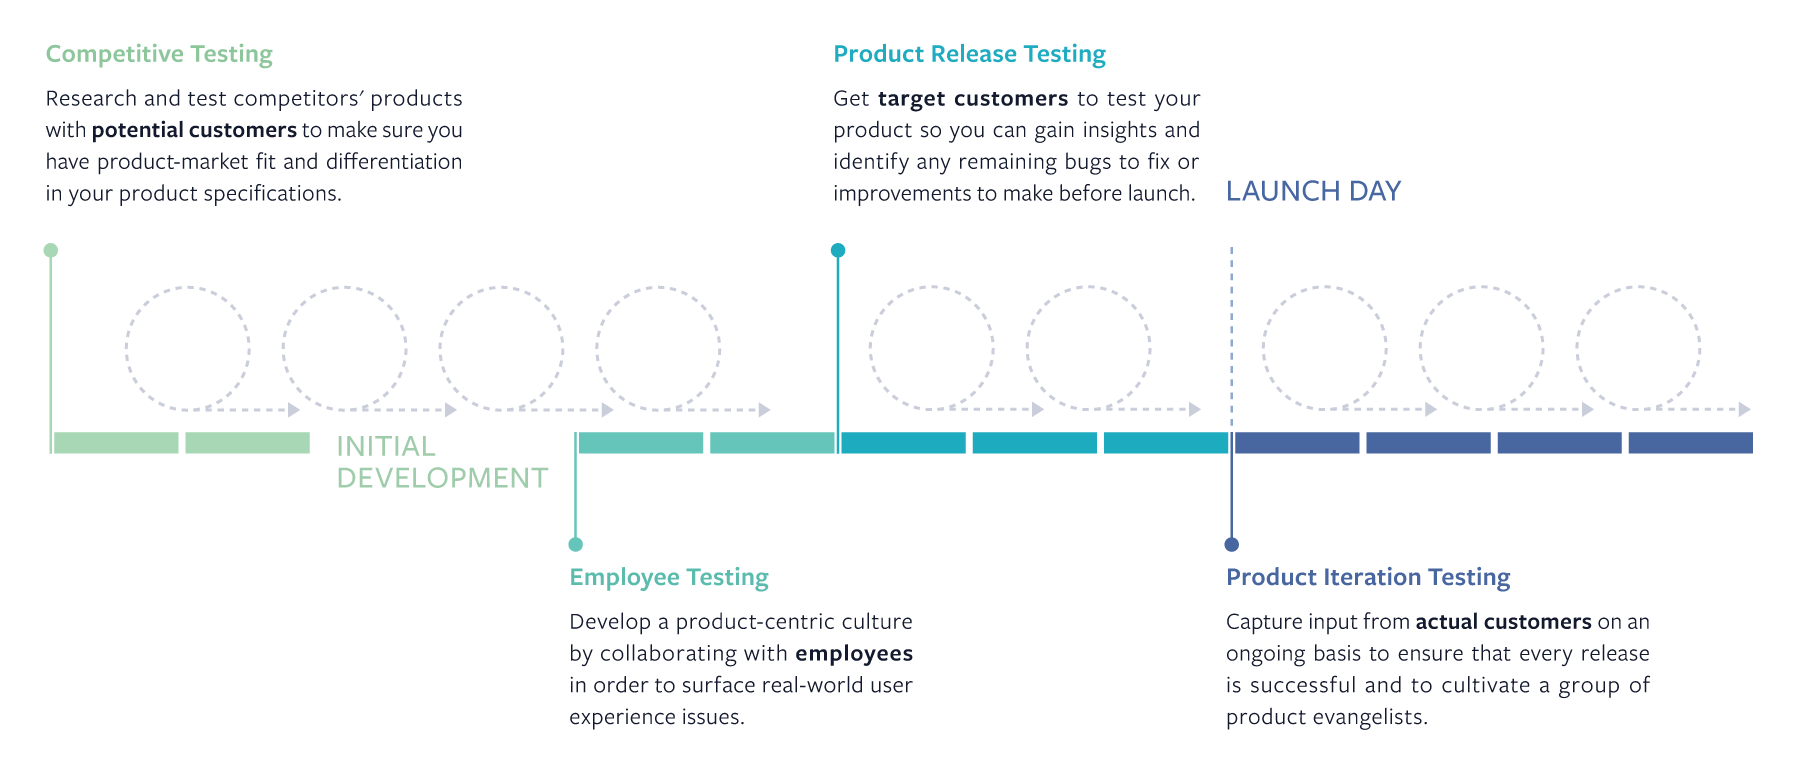 4 Common Delta Testing Use Cases in Product Development